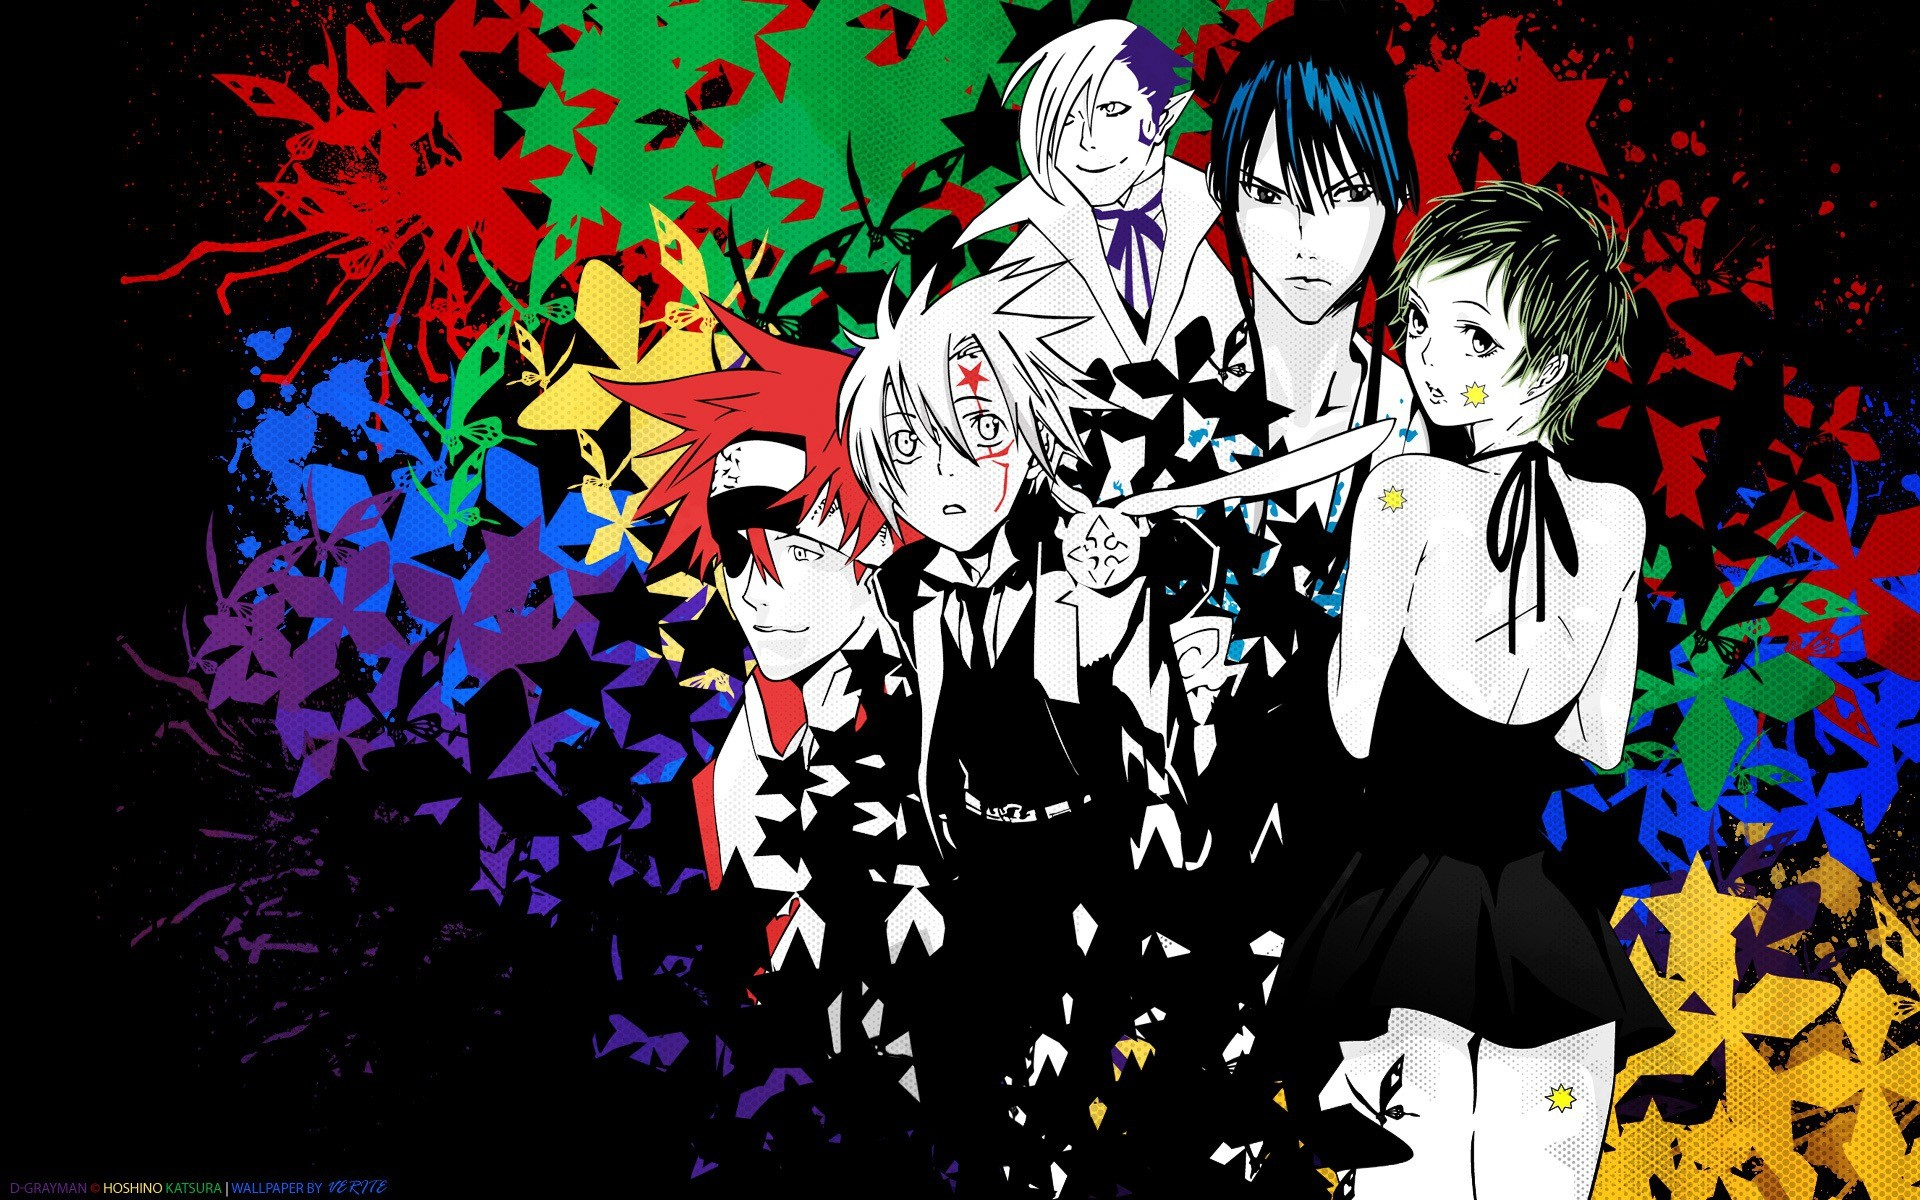 1920x1200 D.Gray-man HD Wallpaper | Background Image |  | ID:118347 -  Wallpaper Abyss